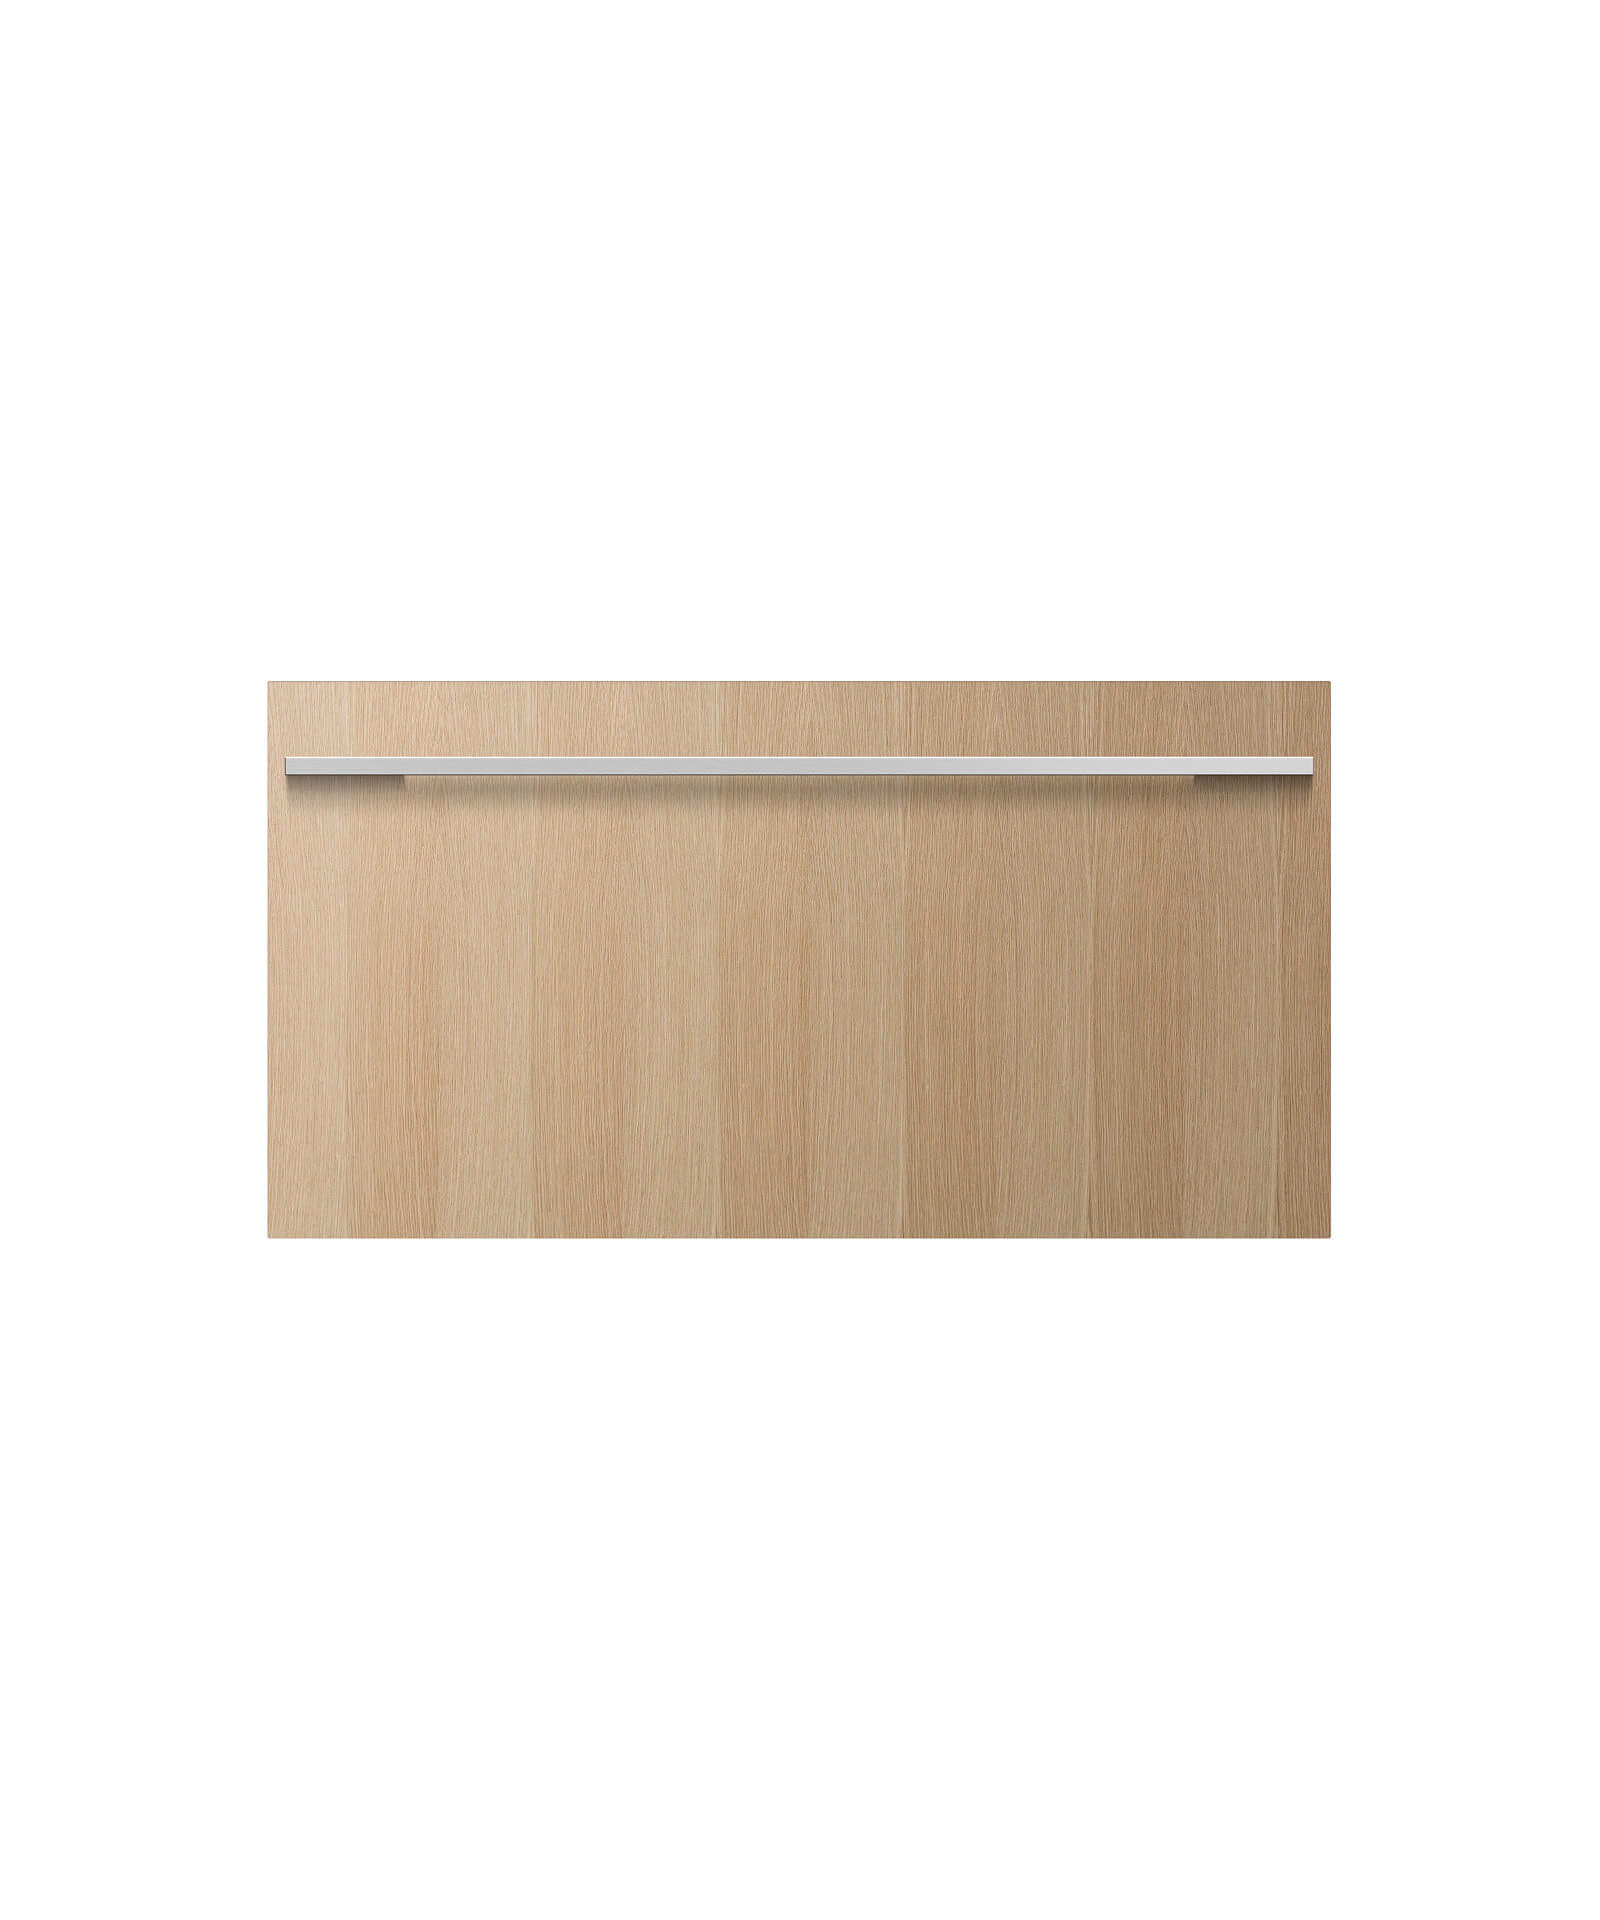 CoolDrawer™ Multi-temperature Drawer